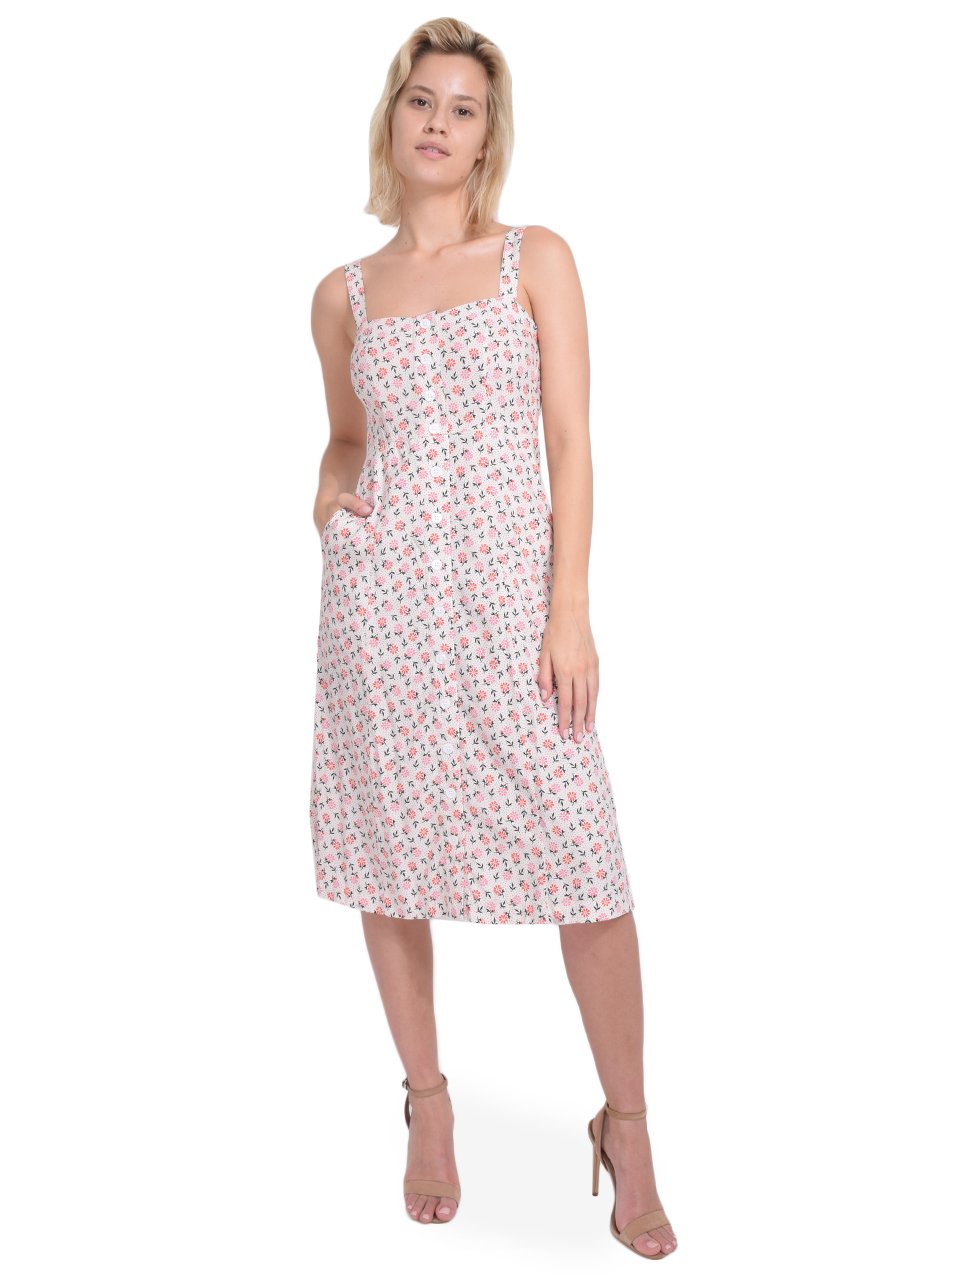 Capulet Sunny Midi Dress in Dot Floral Front View  X1https://cdn11.bigcommerce.com/s-3wu6n/products/33206/images/109519/60__38212.1590528355.244.365.jpg?c=2X2